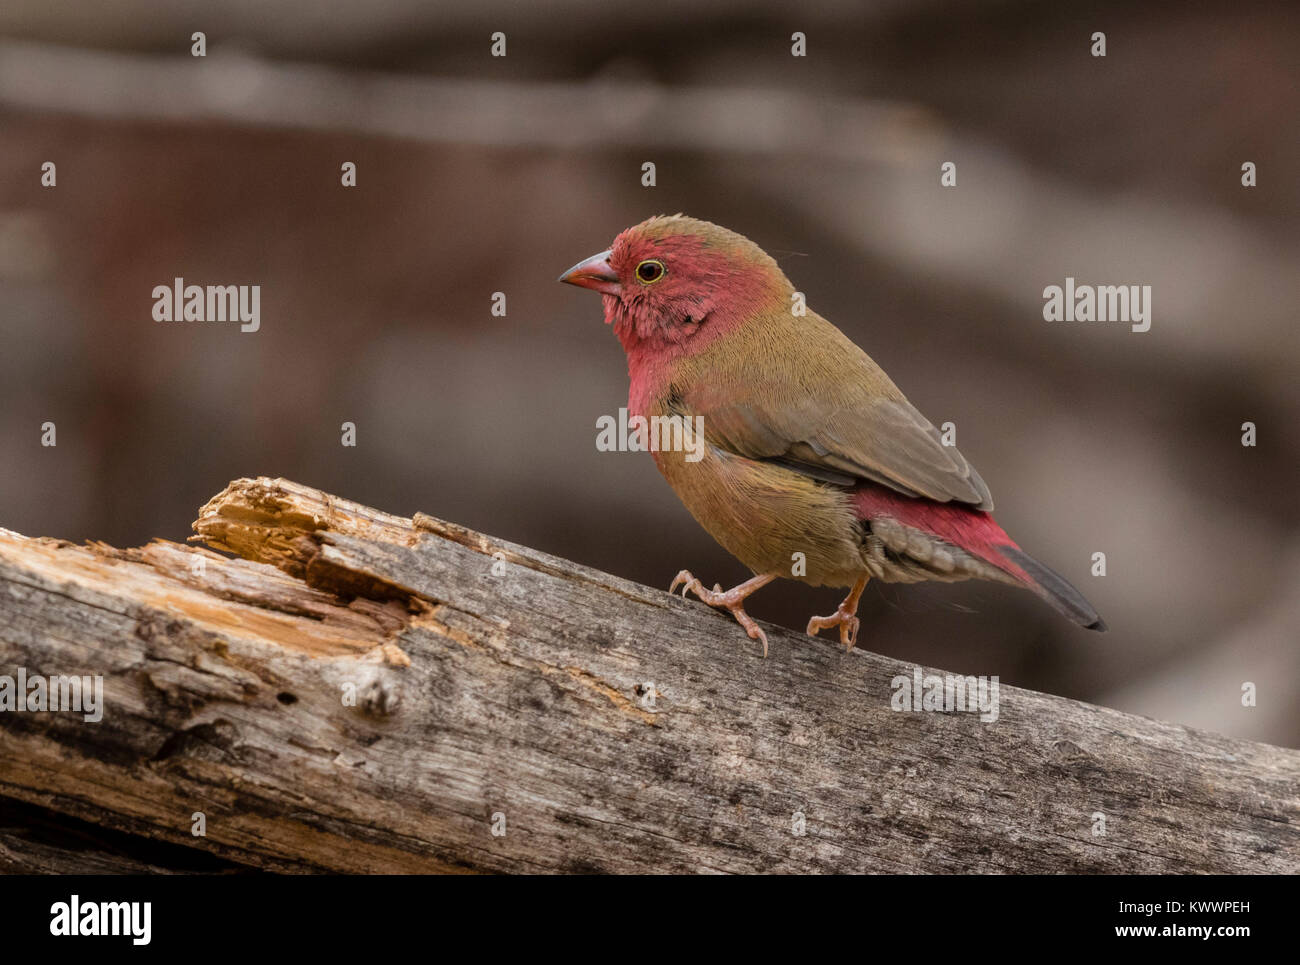 Red-billed Firefinch (Lagonosticta senegala) male perched on a branch Stock Photo